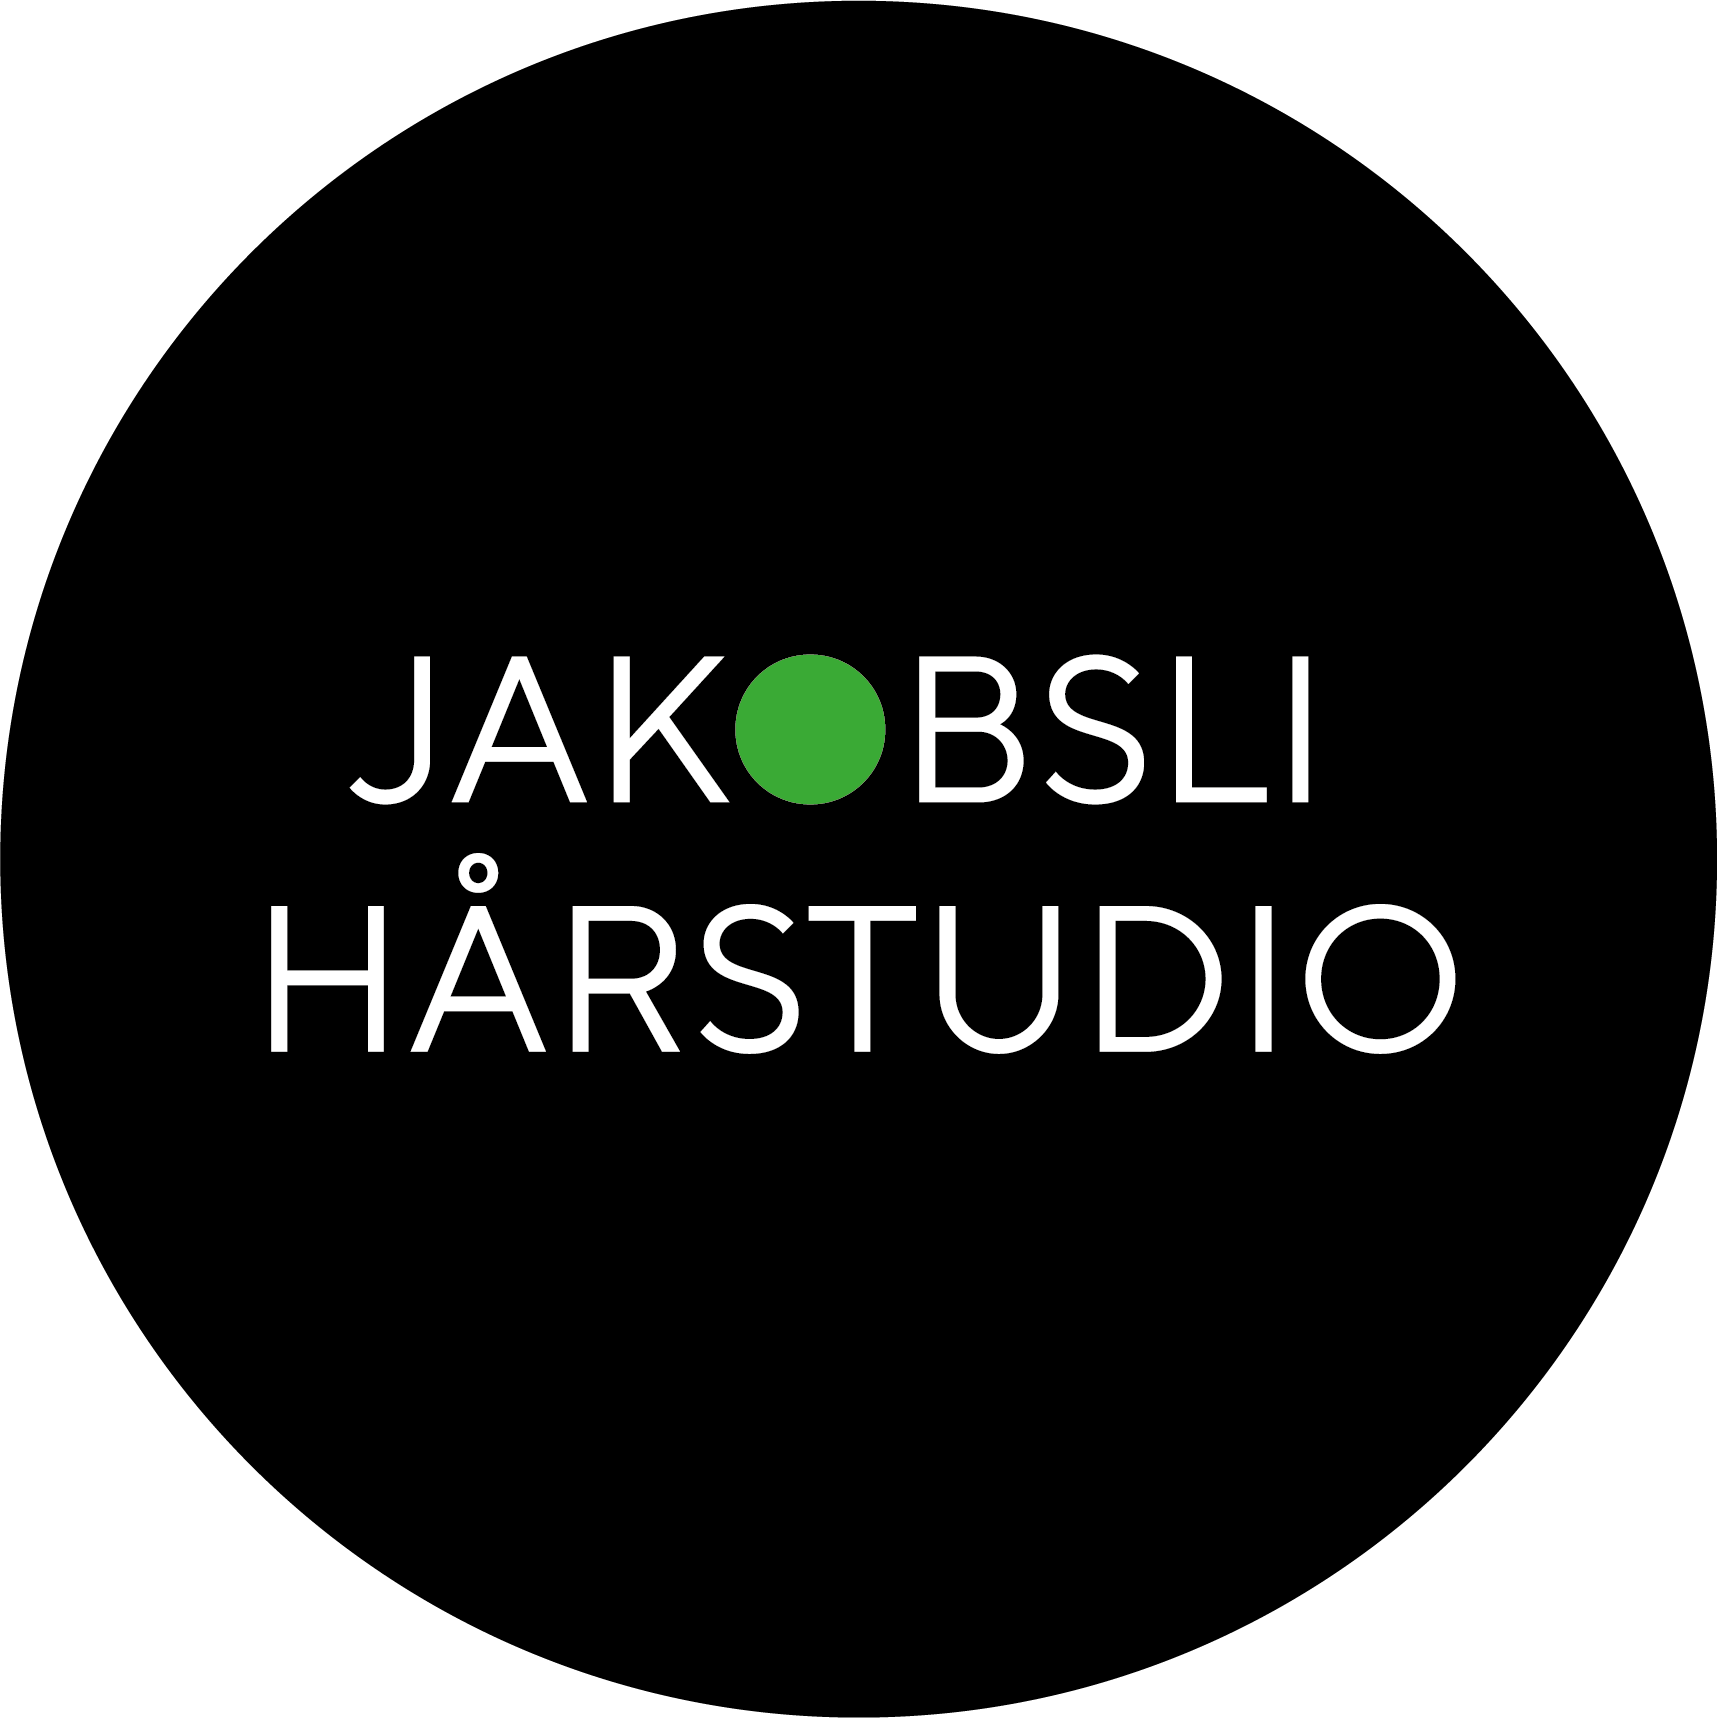 JAKOBSLI HÅRSTUDIO AS